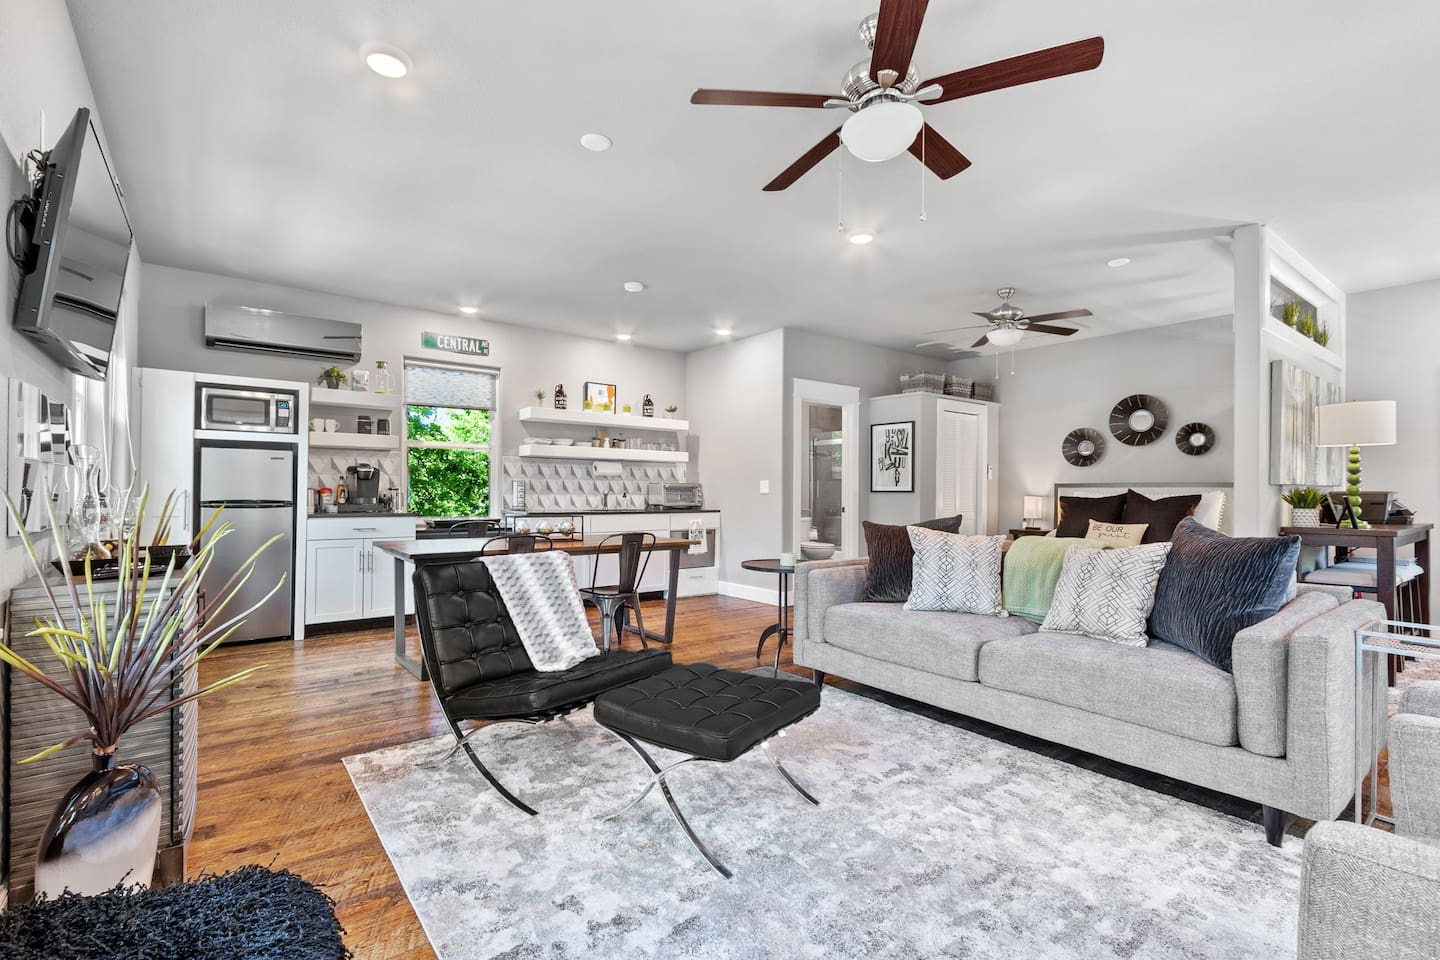 Bright, cheery and oh-so comfy...our Studio is visible from the square and just steps away from amazing restaurants, shopping and attractions.  You'll be in the heart of downtown Bentonville but you may be so cozy that you don't want to leave!